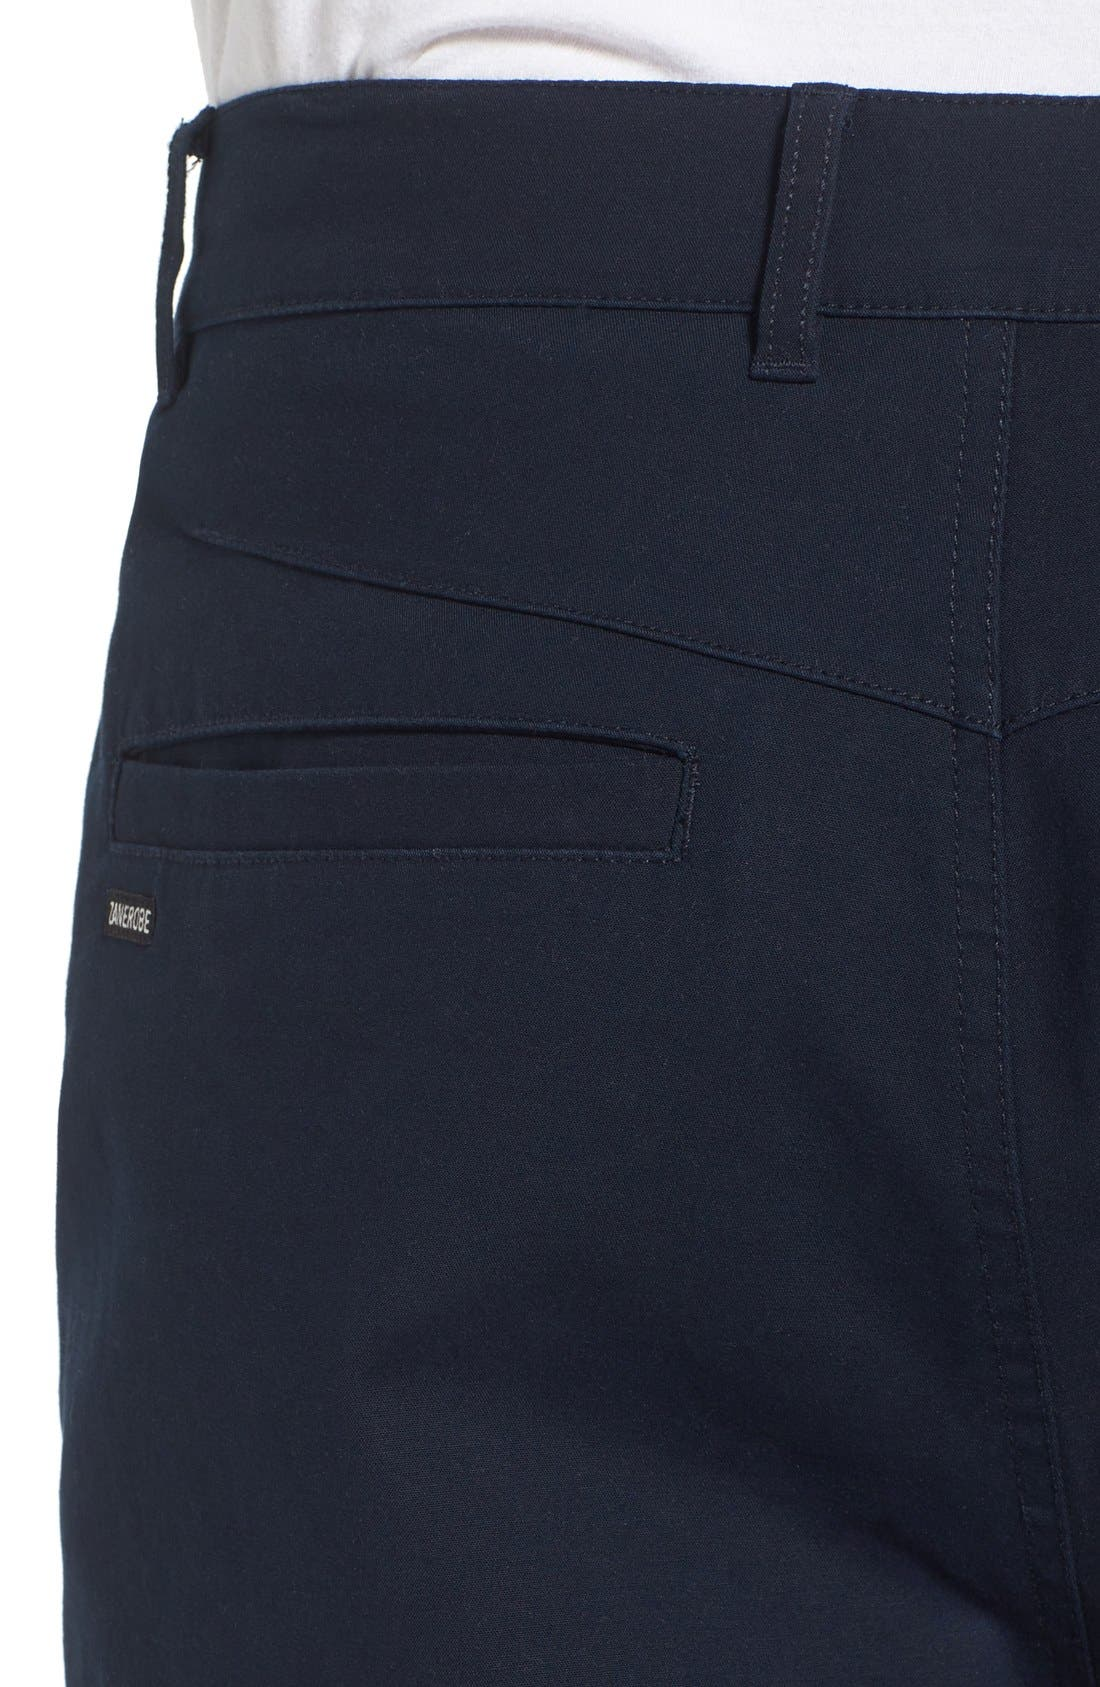 'Sharpshot' Slouchy Skinny Fit Chinos,                             Alternate thumbnail 5, color,                             410